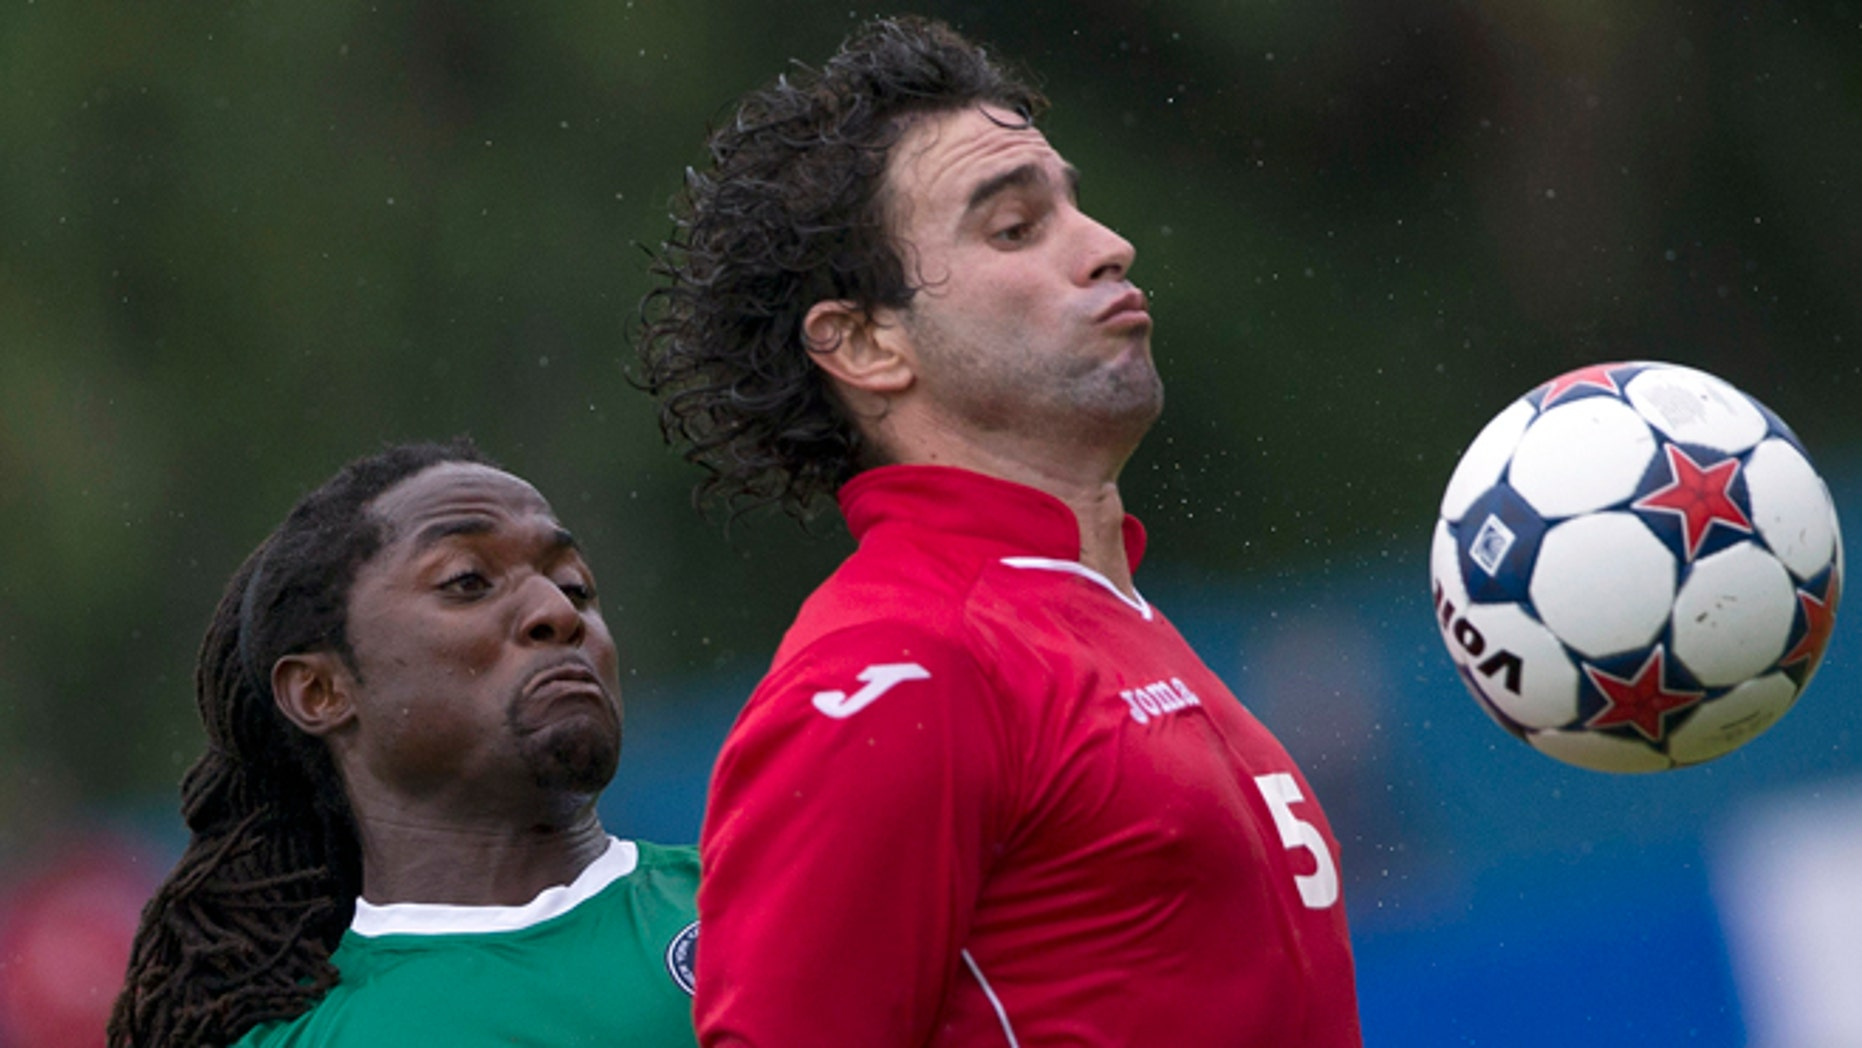 New York Cosmos' Lucky Mkosana, left, fights for the ball against Cuba's Jorge Luis Clavelo during their friendly soccer match at the Pedro Marrero stadium in Havana, Cuba, Tuesday, June 2, 2015. Cosmos won the game 4-1. (AP Photo/Ramon Espinosa)